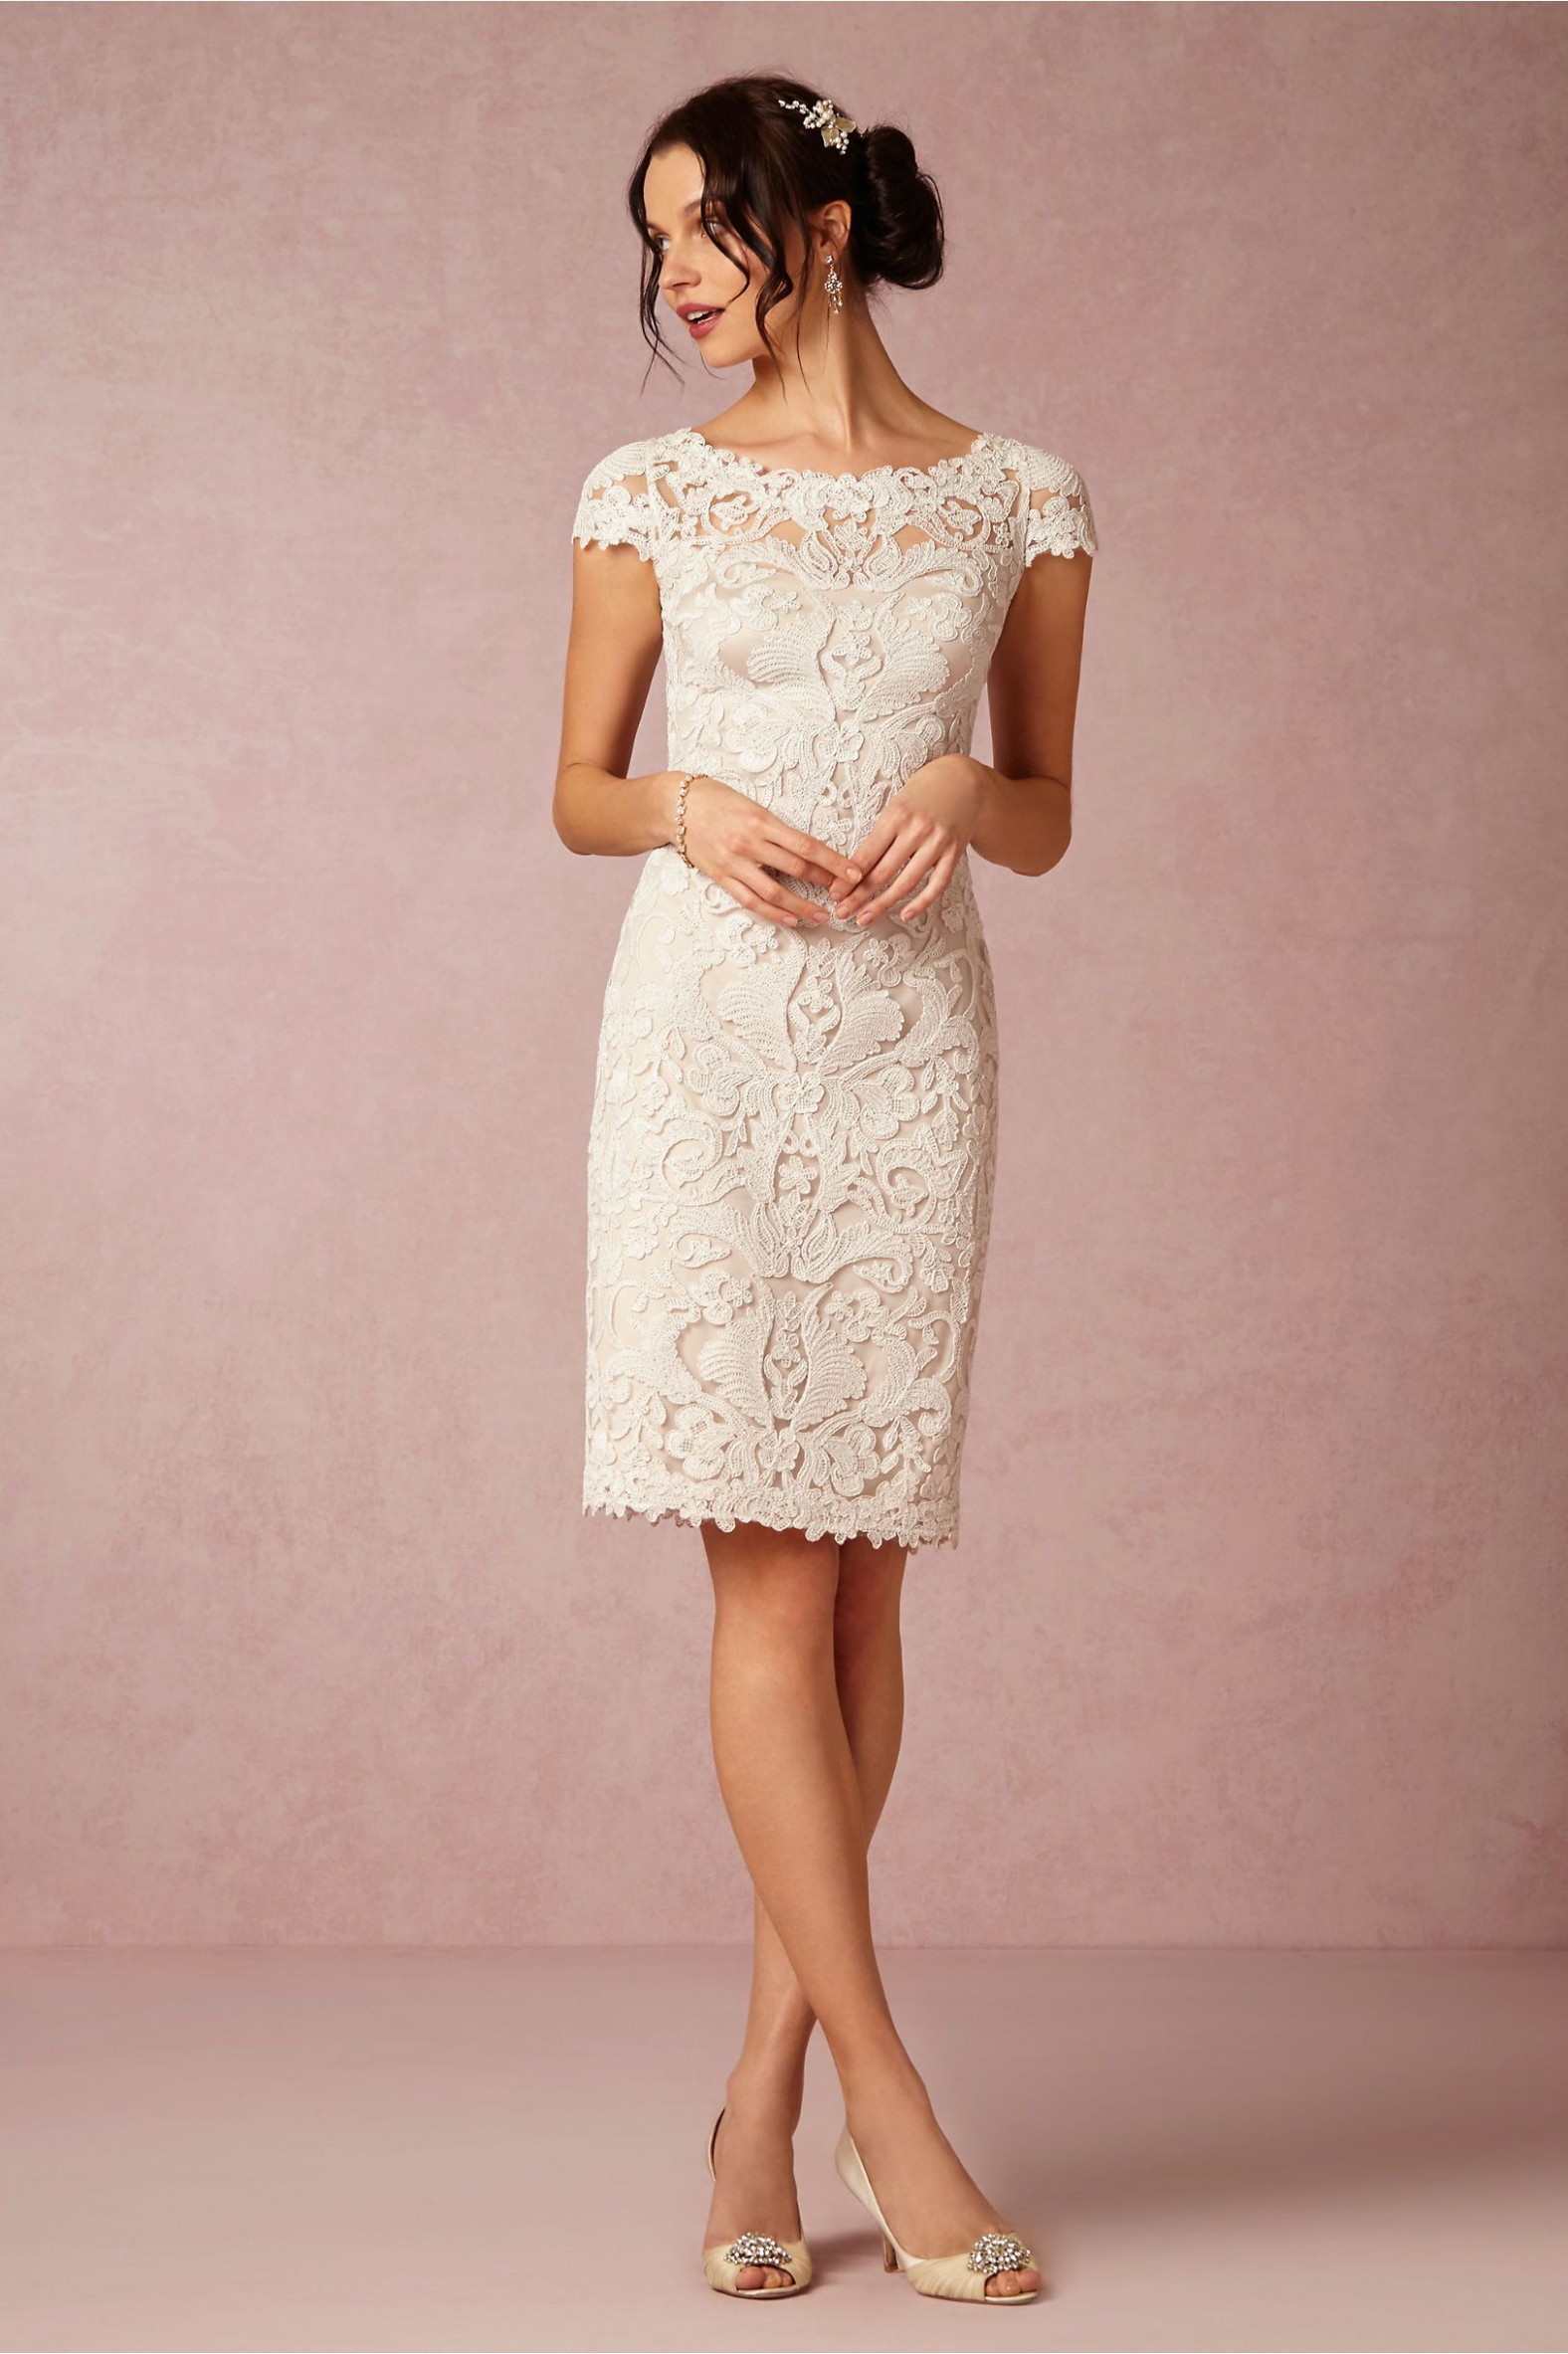 hadley dress in bride at bhldn standesamt kleidung, kleid kleid standesamt braut